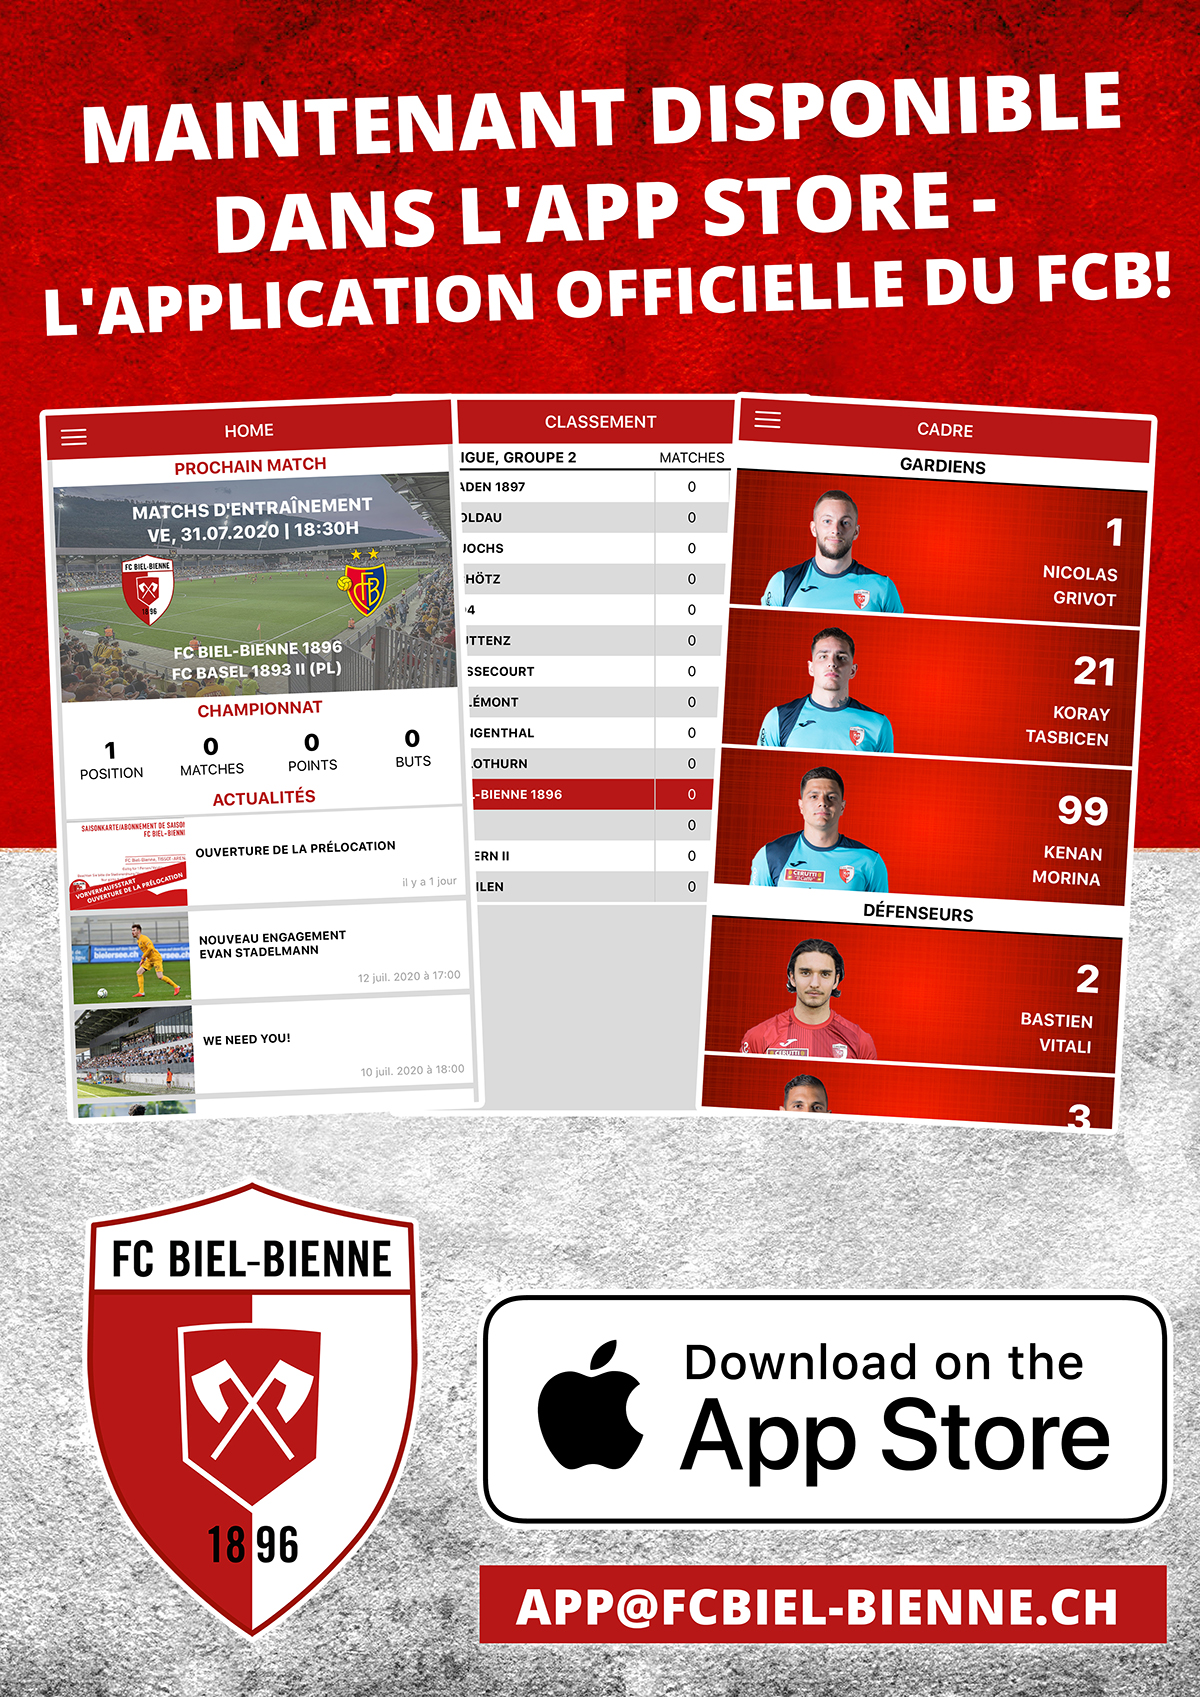 L'application officielle du FCB!